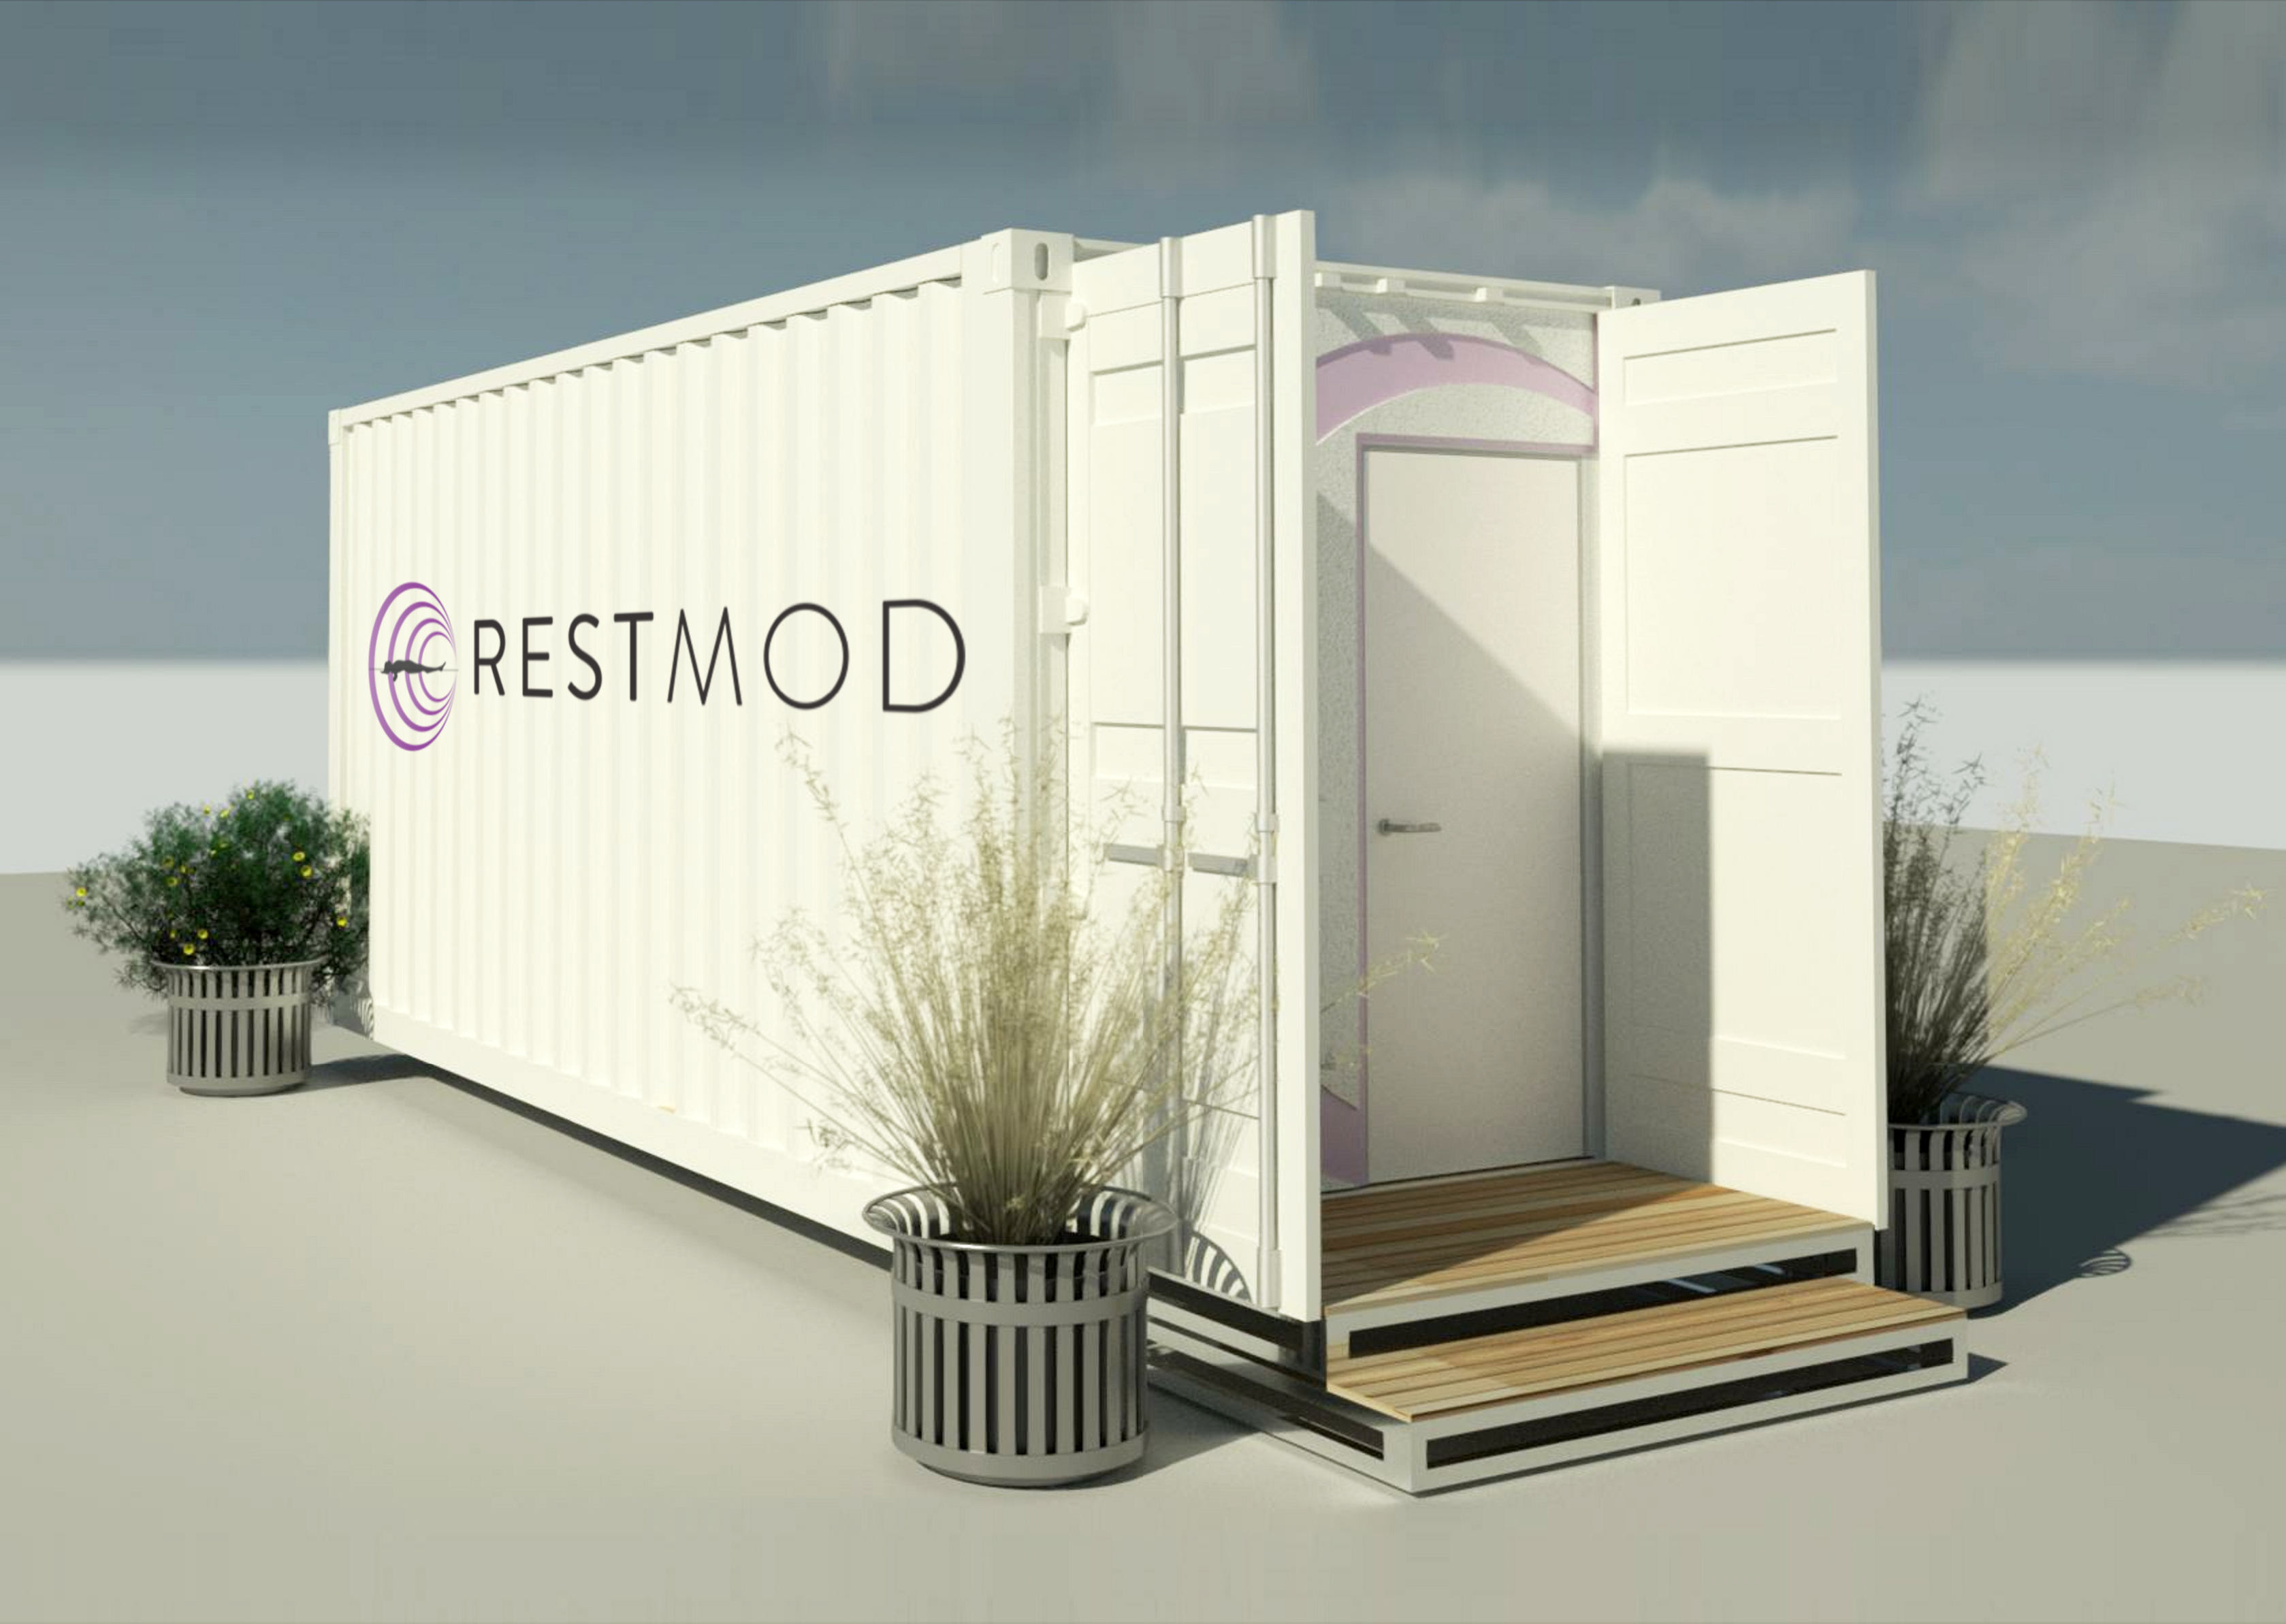 Restmod_Container Renders_Exterior Side_v1